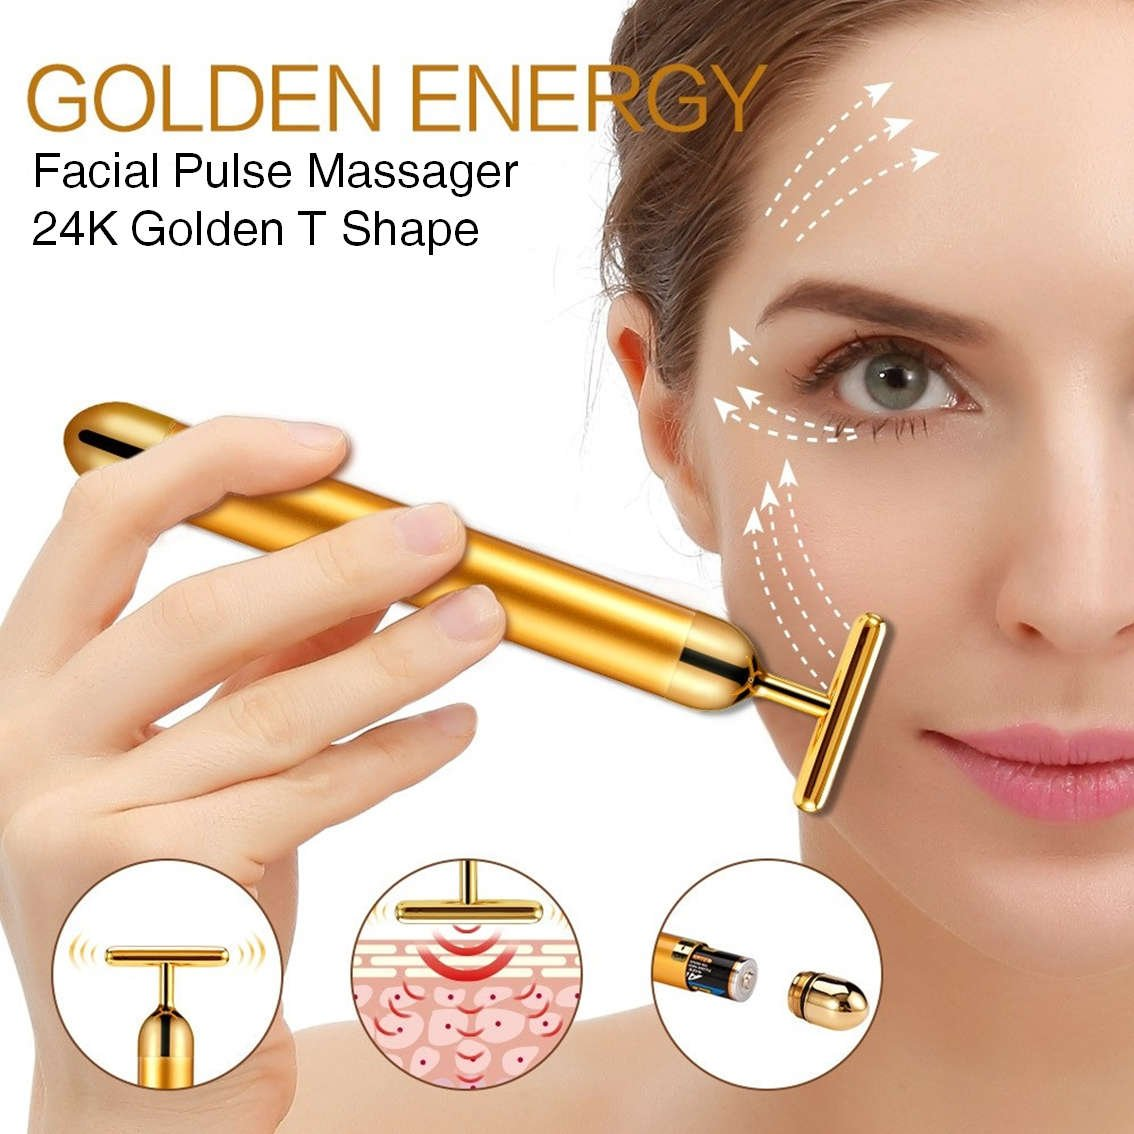 24k Golden pulse facial massager, Instant Face Lift, Anti-Wrinkles,Skin Tightening, Face Firming, Eliminate Dark Circles, and a good Anti-Aging Device for Man and Women (Gold) by AirPromise (Image #2)